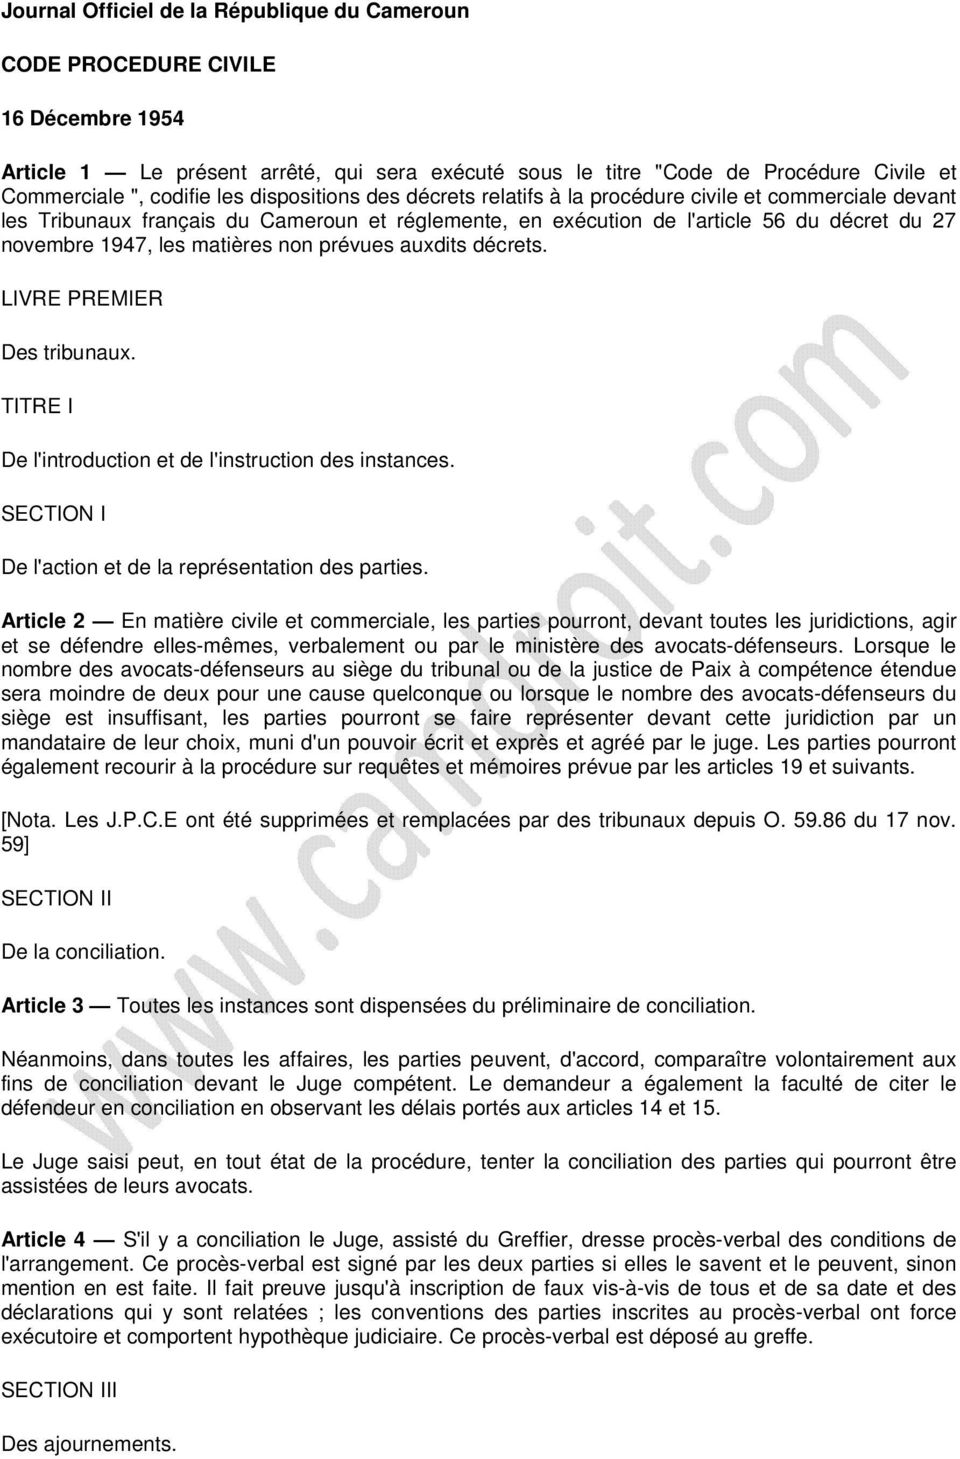 matières non prévues auxdits décrets. LIVRE PREMIER Des tribunaux. TITRE I De l'introduction et de l'instruction des instances. SECTION I De l'action et de la représentation des parties.